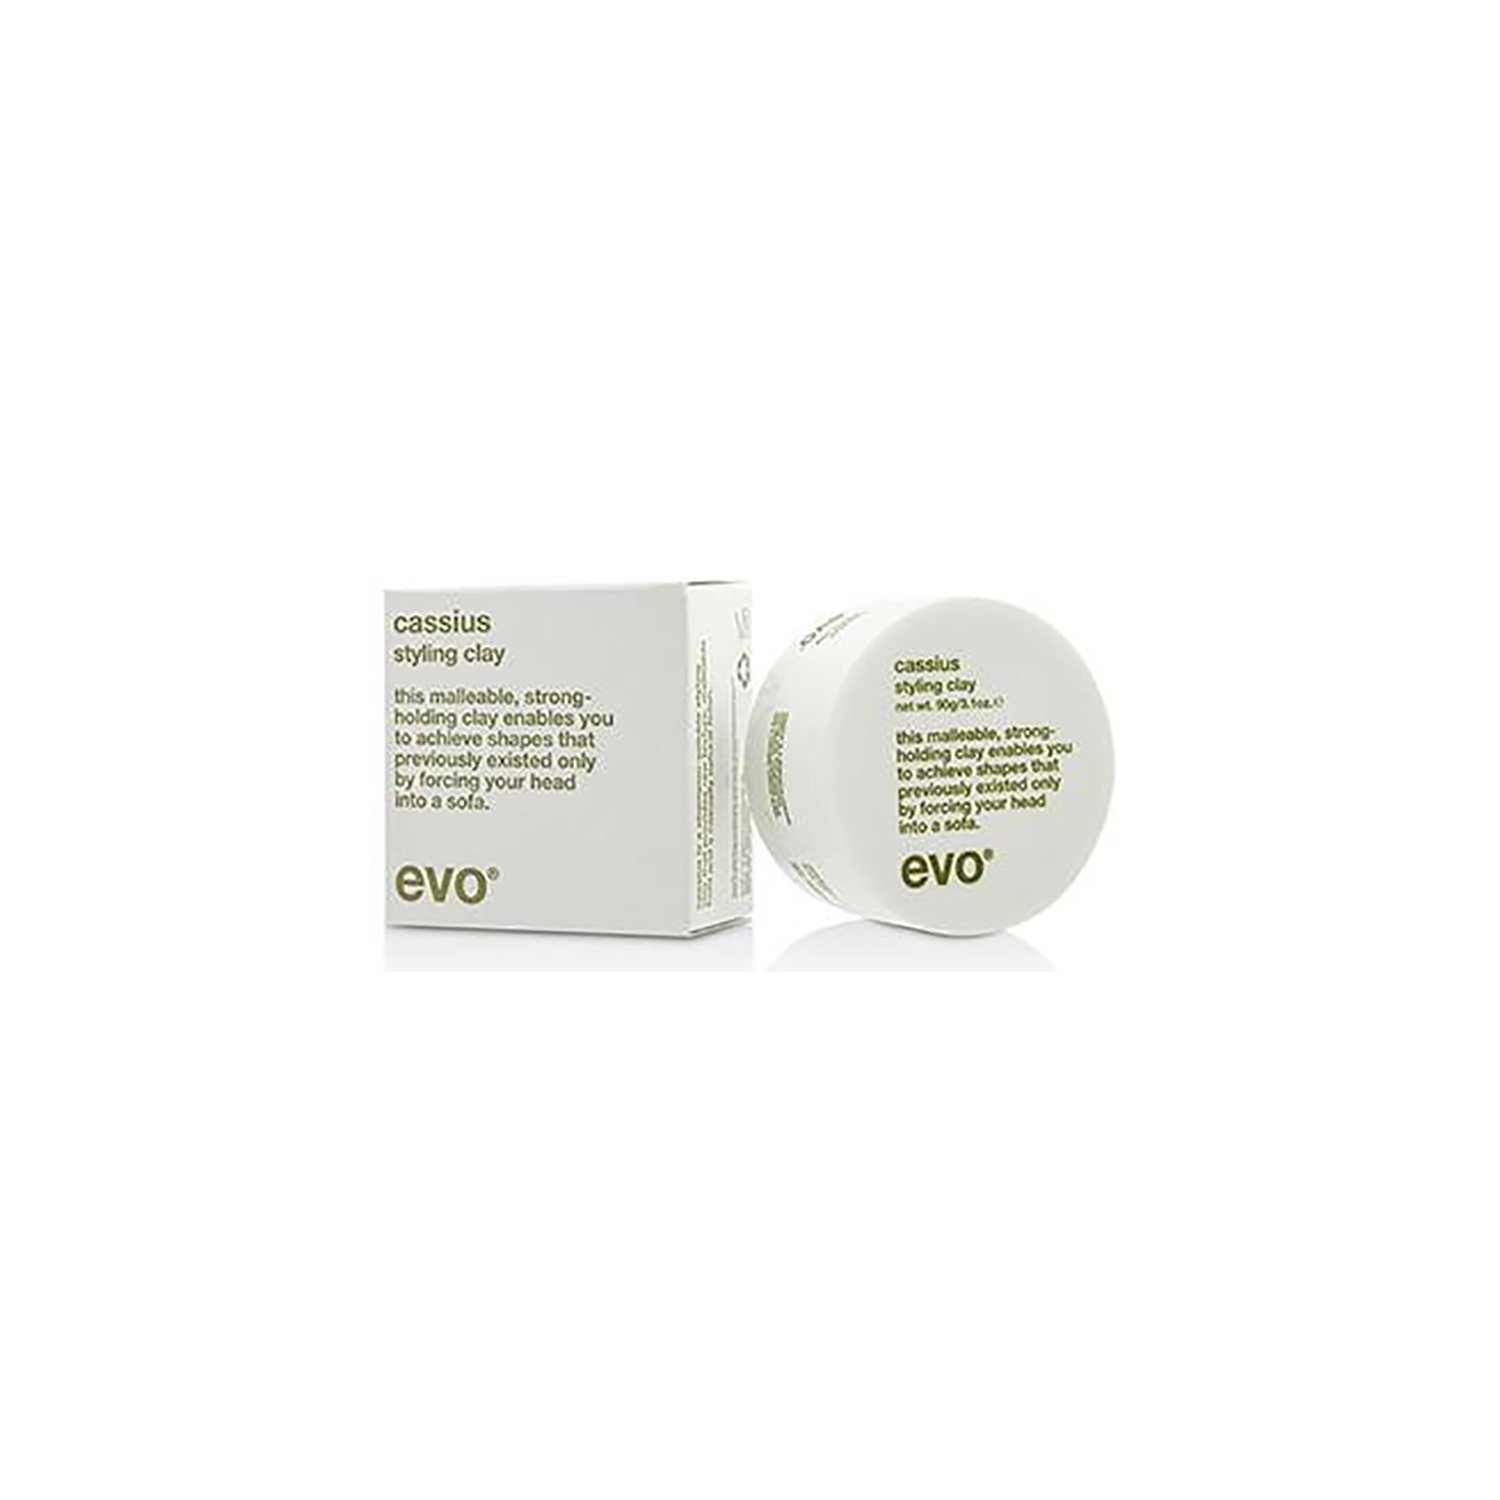 Evo Cassius Styling Clay, 3.1 Oz